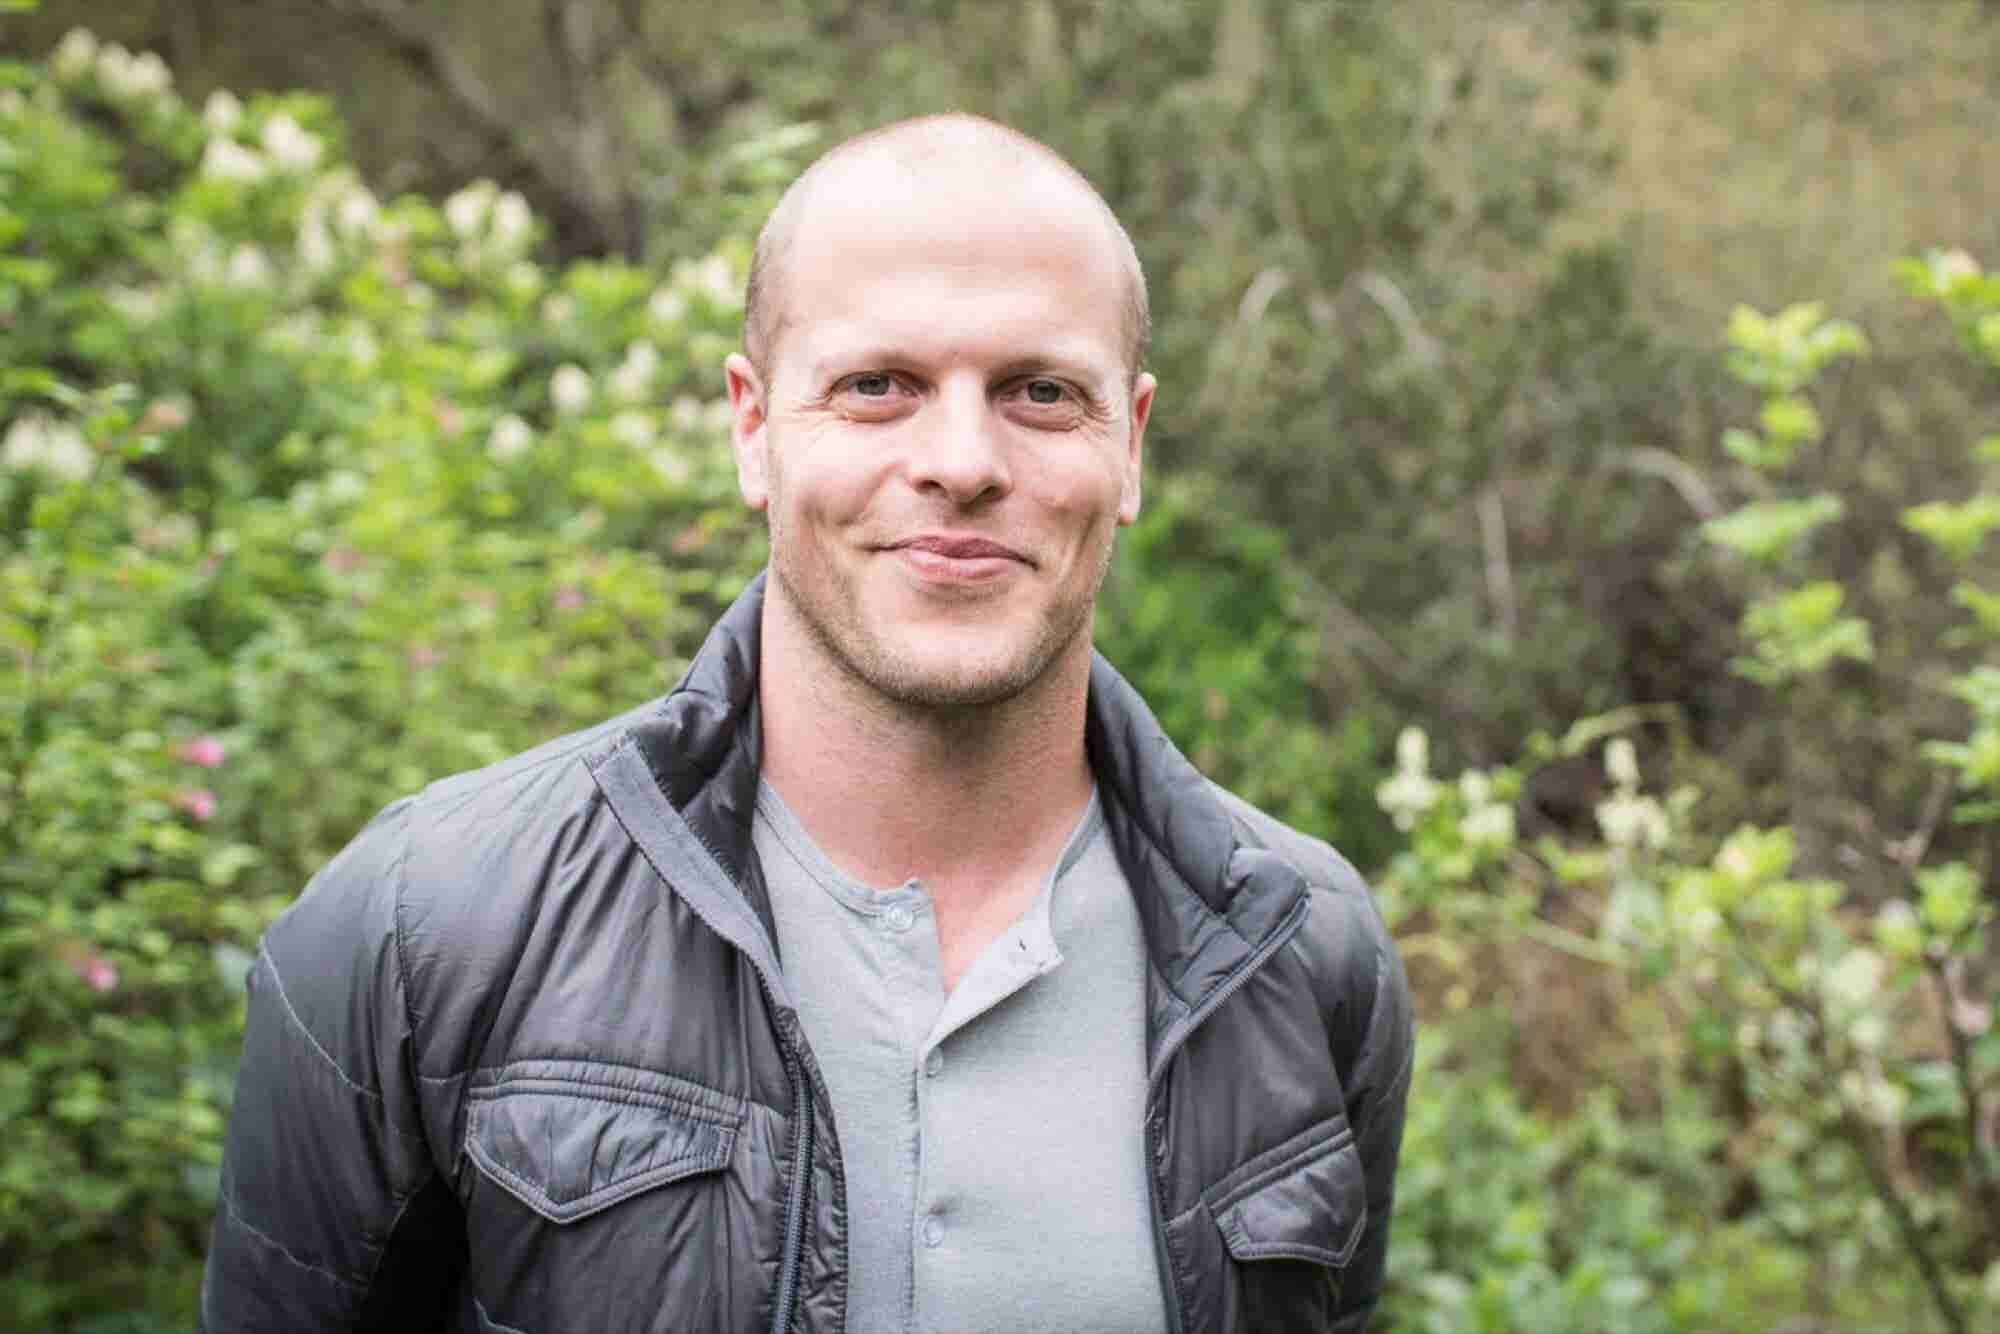 Why Tim Ferriss Wants to Be the Dumbest Guy in the Room